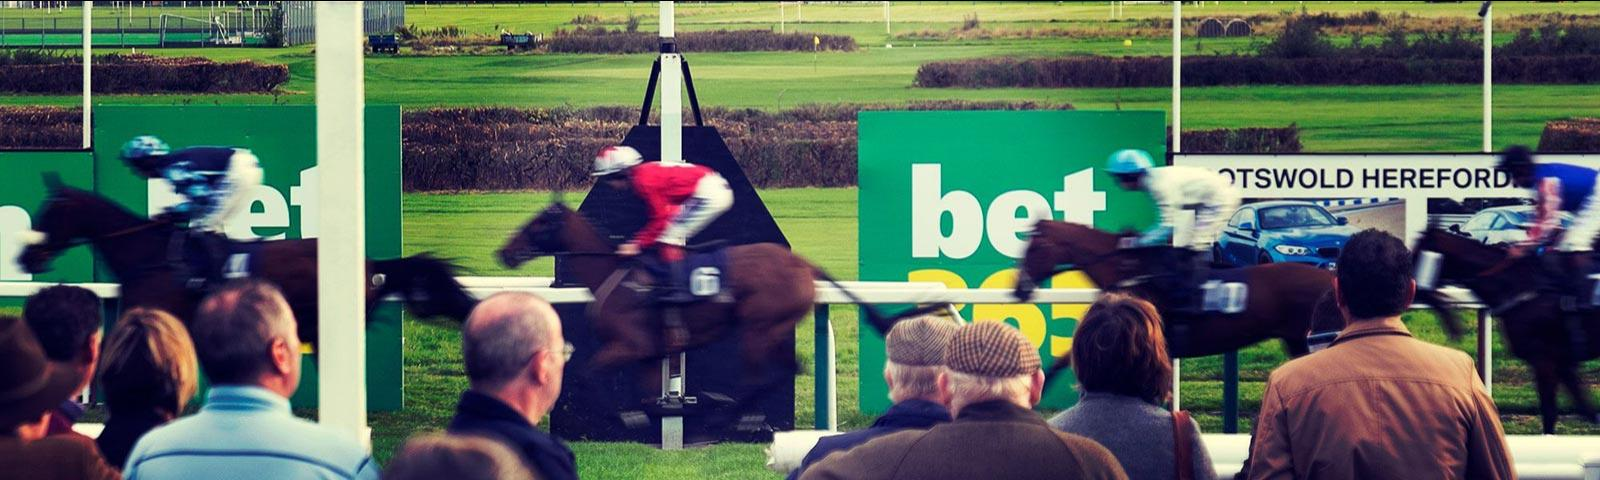 horses passing finish line at hereford racecourse